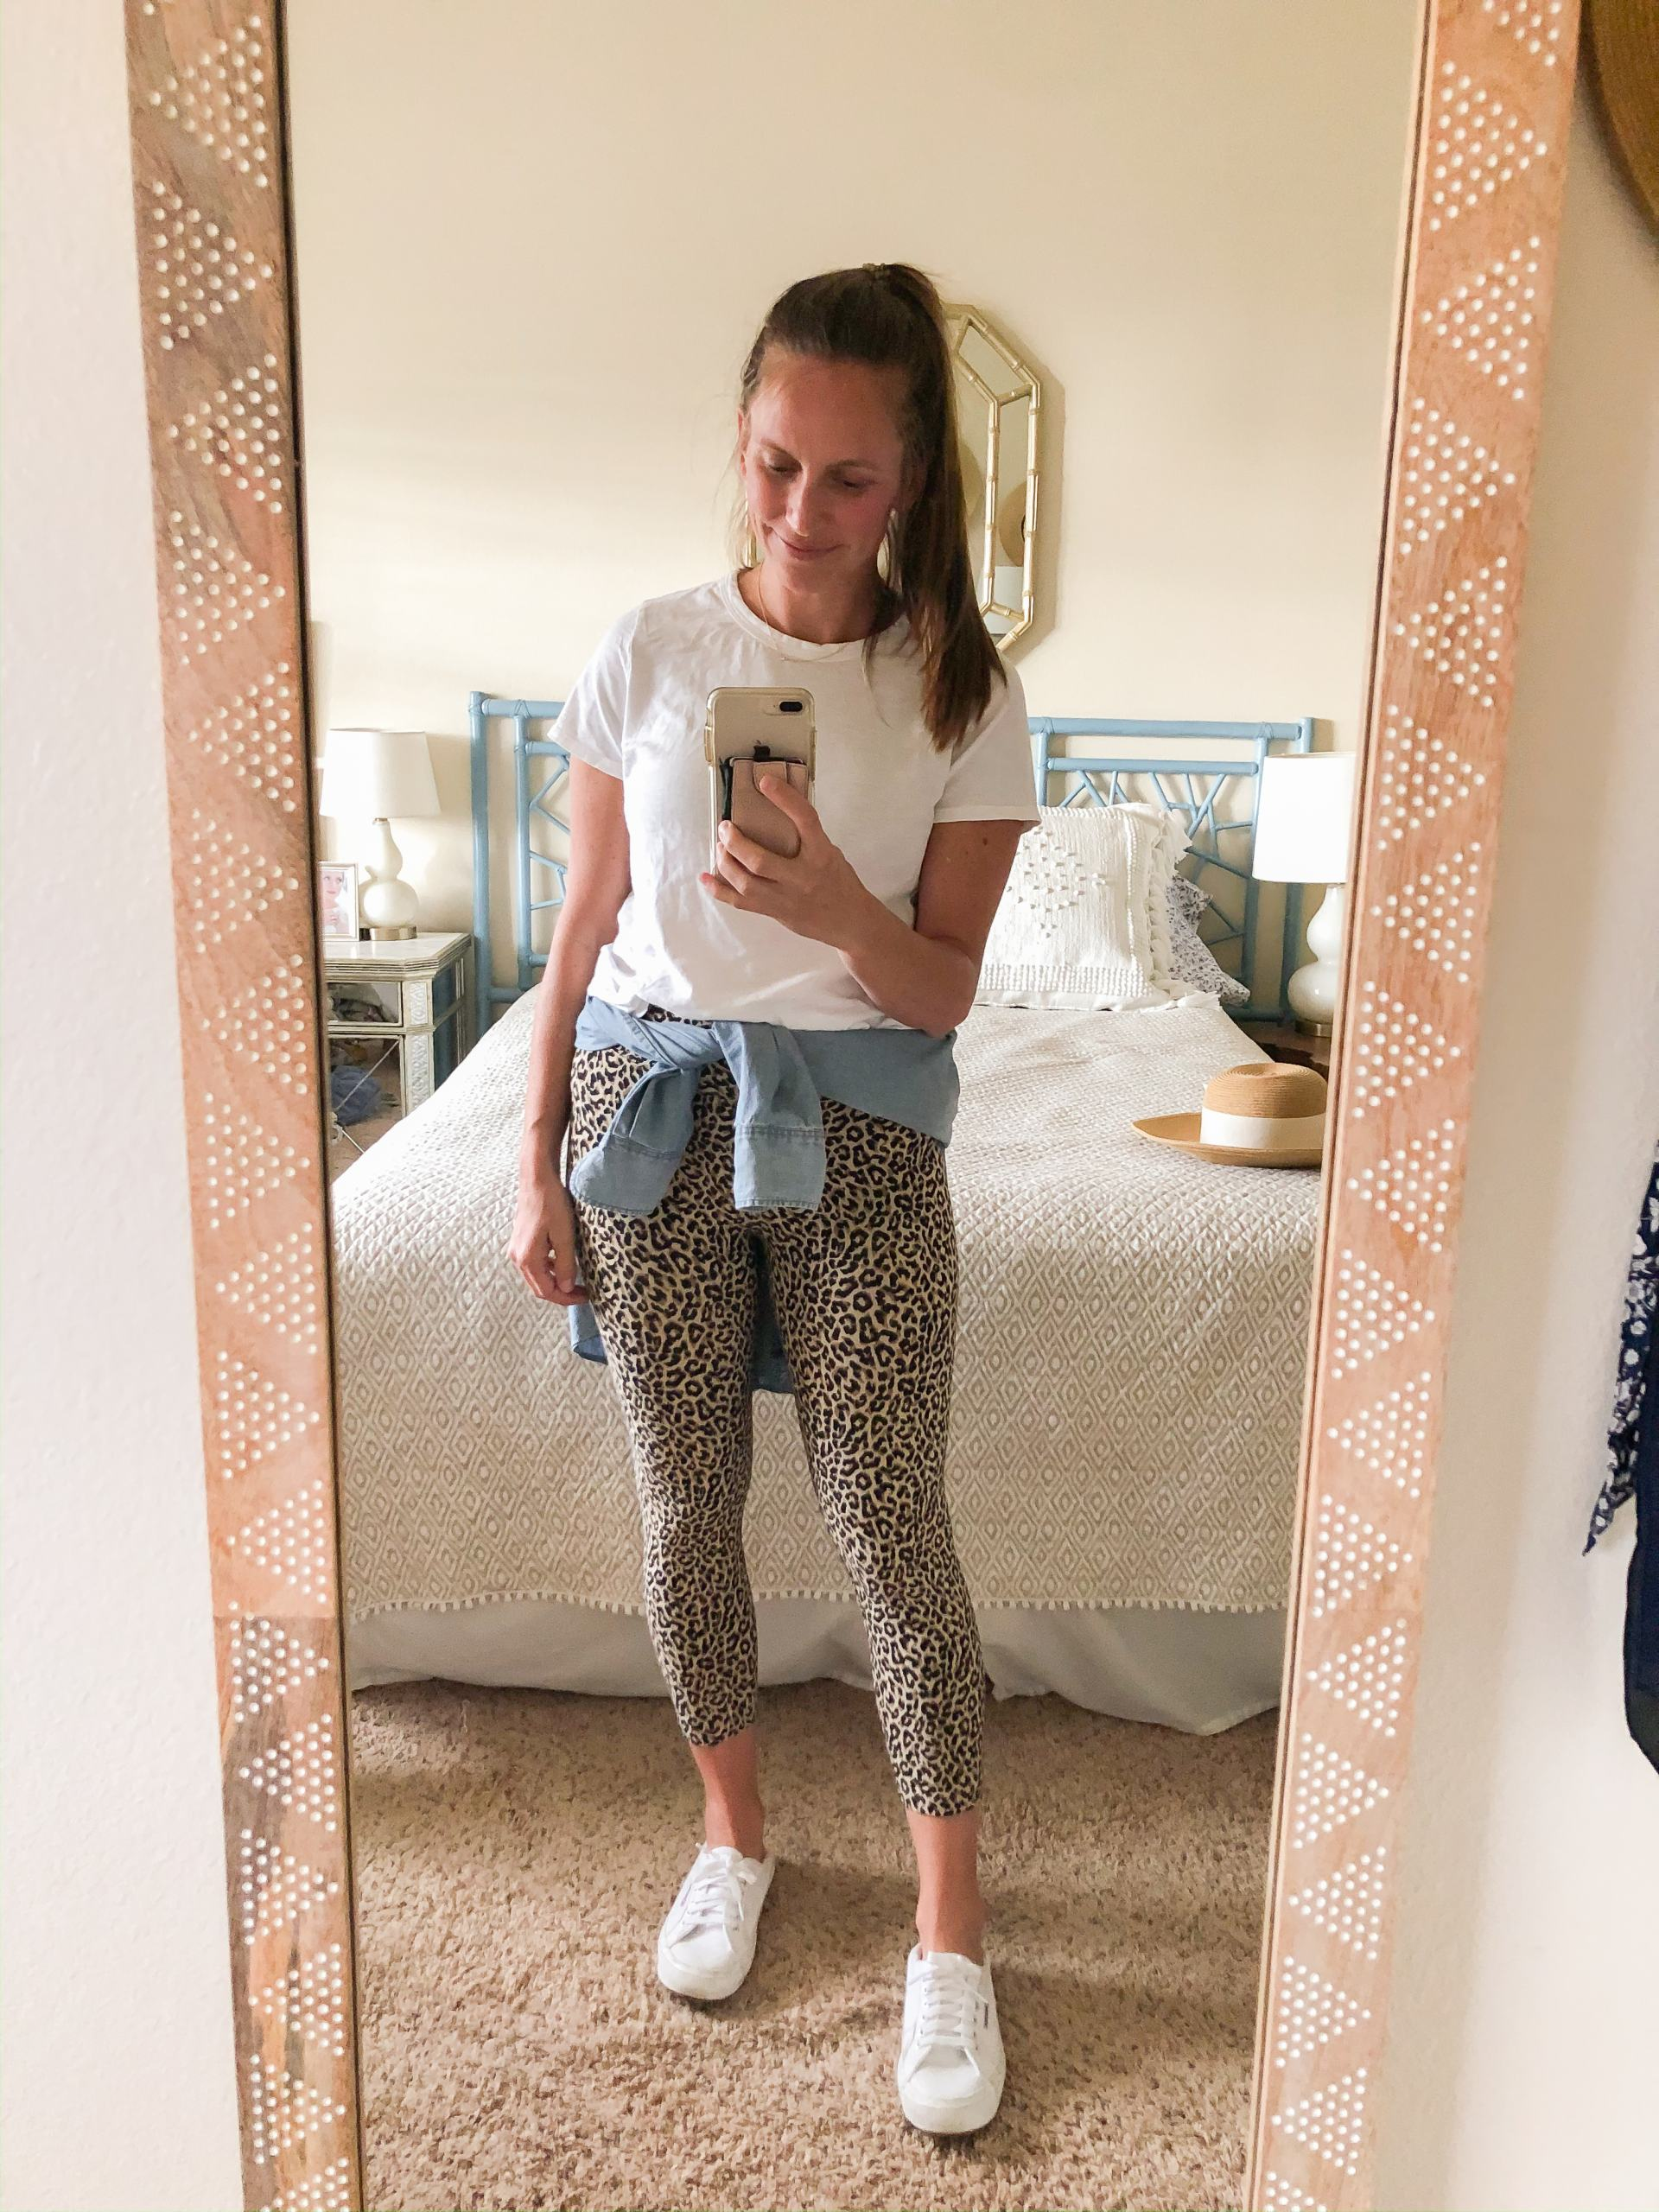 leopard leggings - leopard print leggings - athleisure spring outfit - mom friendly outfit ideas